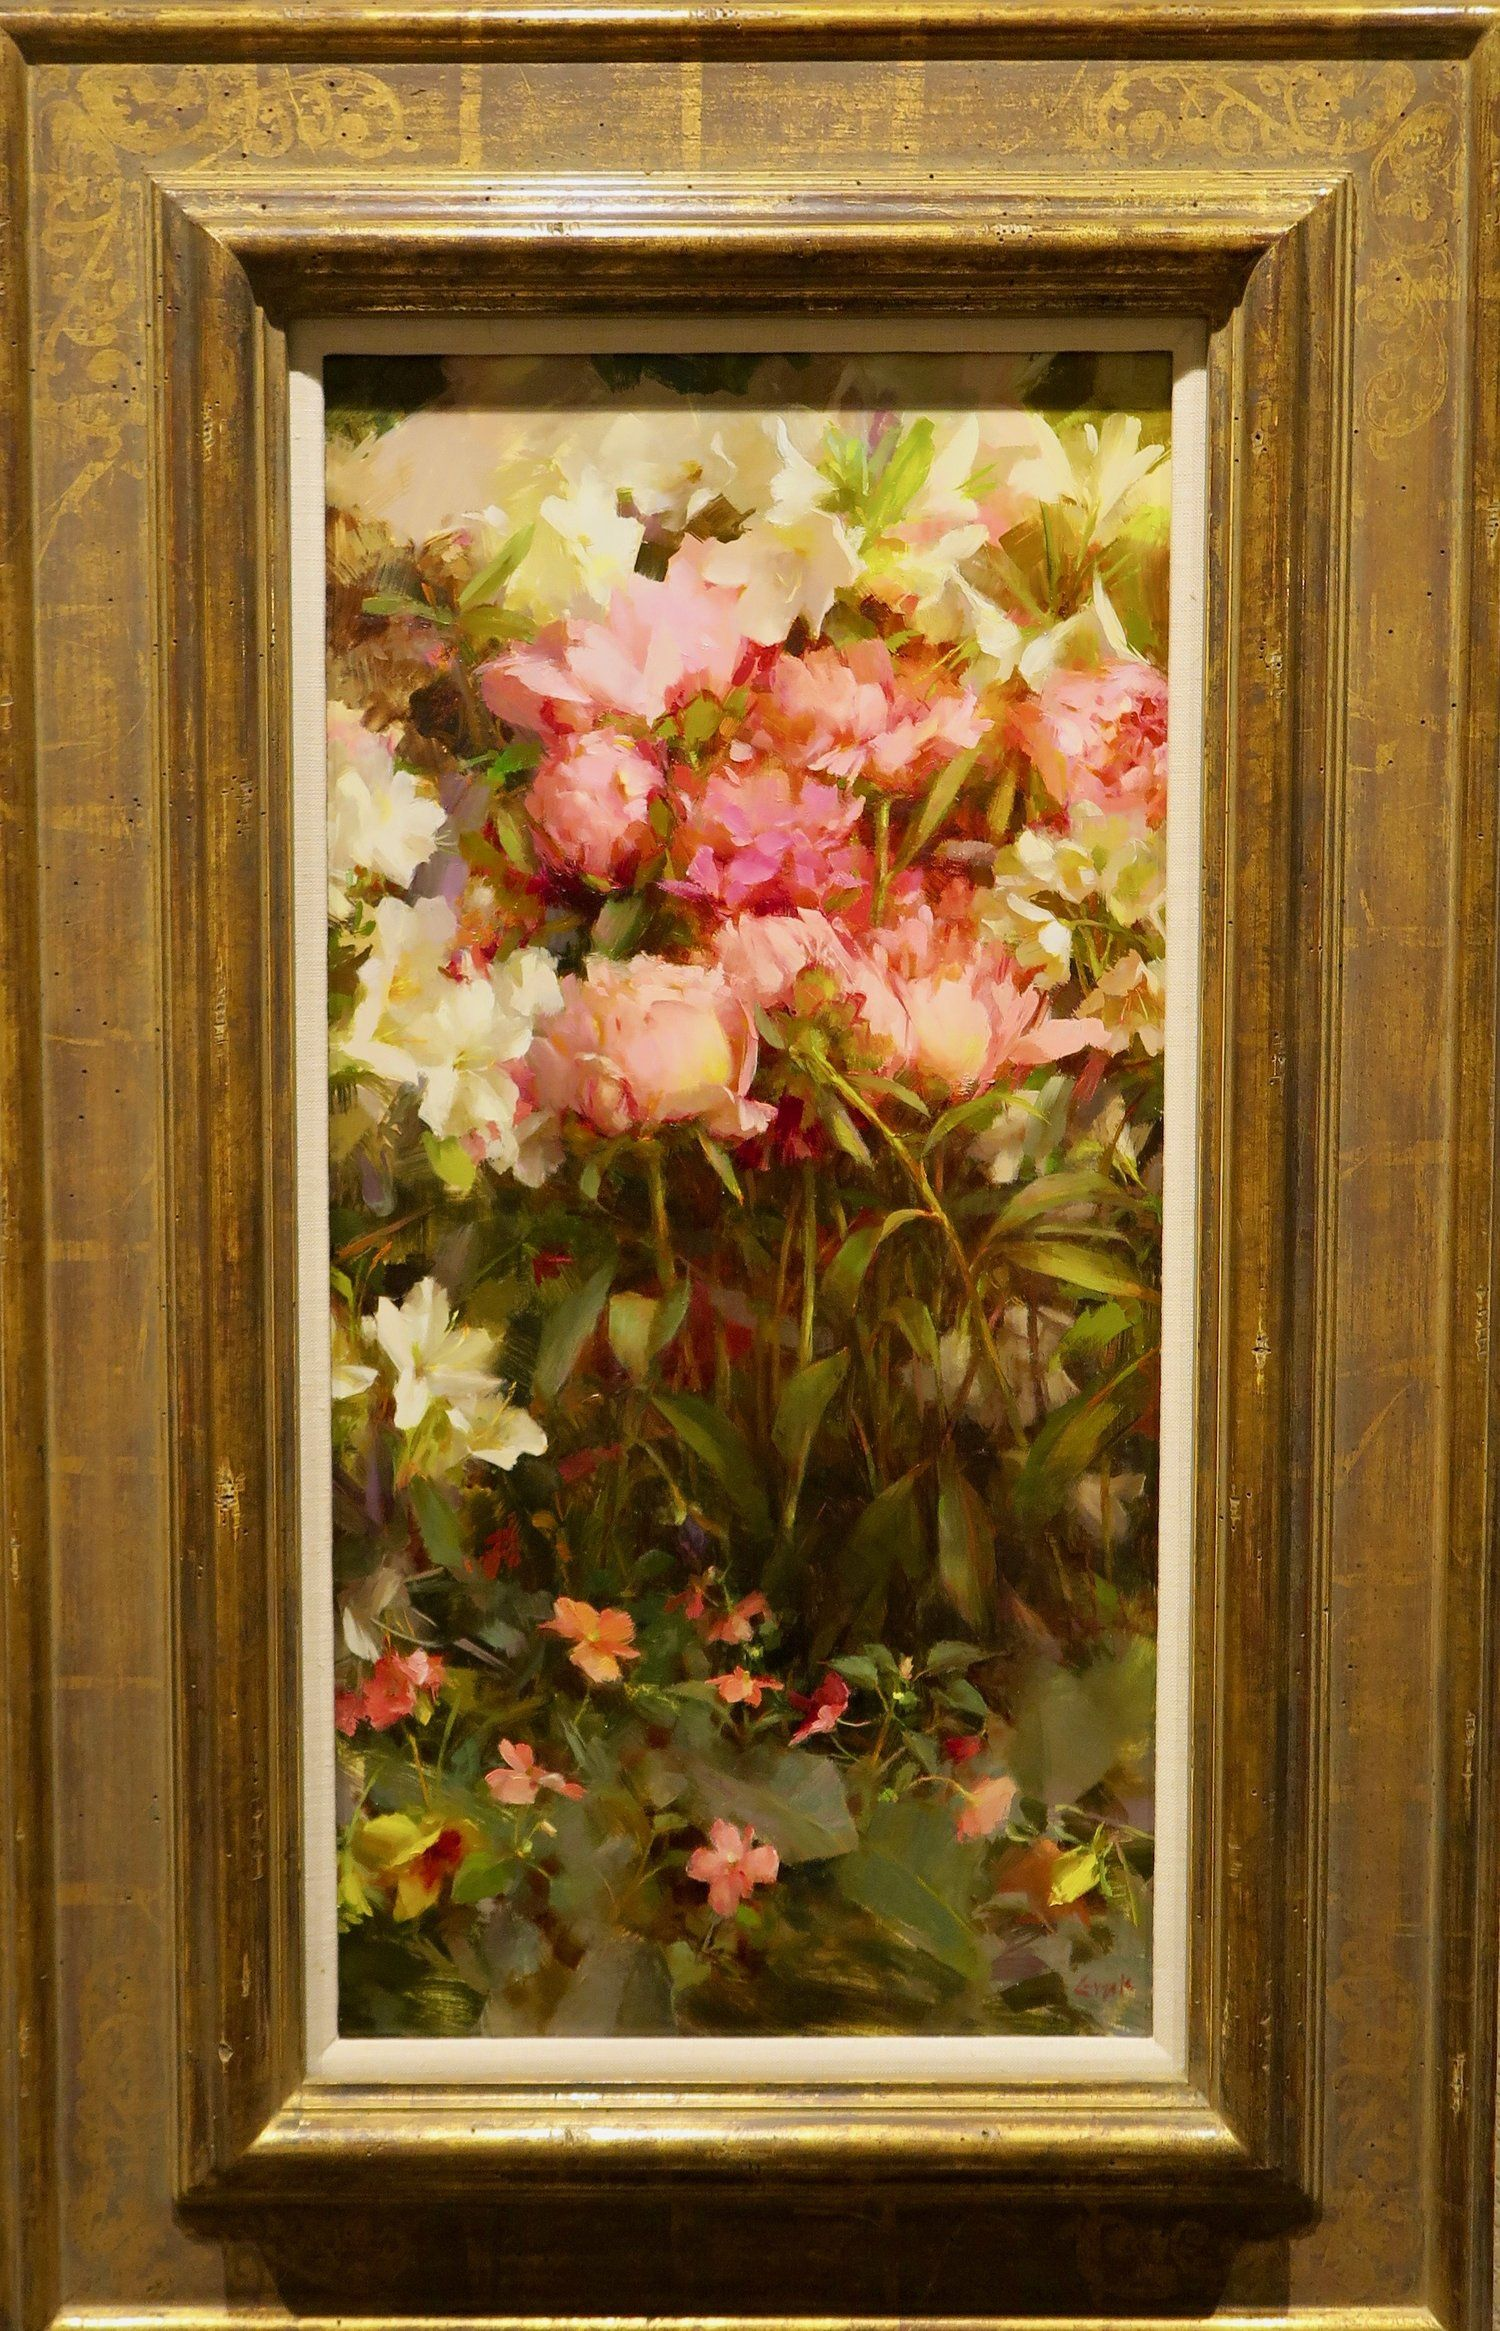 Peonies Oil 24 X 12 C Nancy Guzik 2010 22 Karat Custom Gold Leaf Frame From Allman C This Image Is Under Strict Copyright To The Rose Painting Fine Art Art